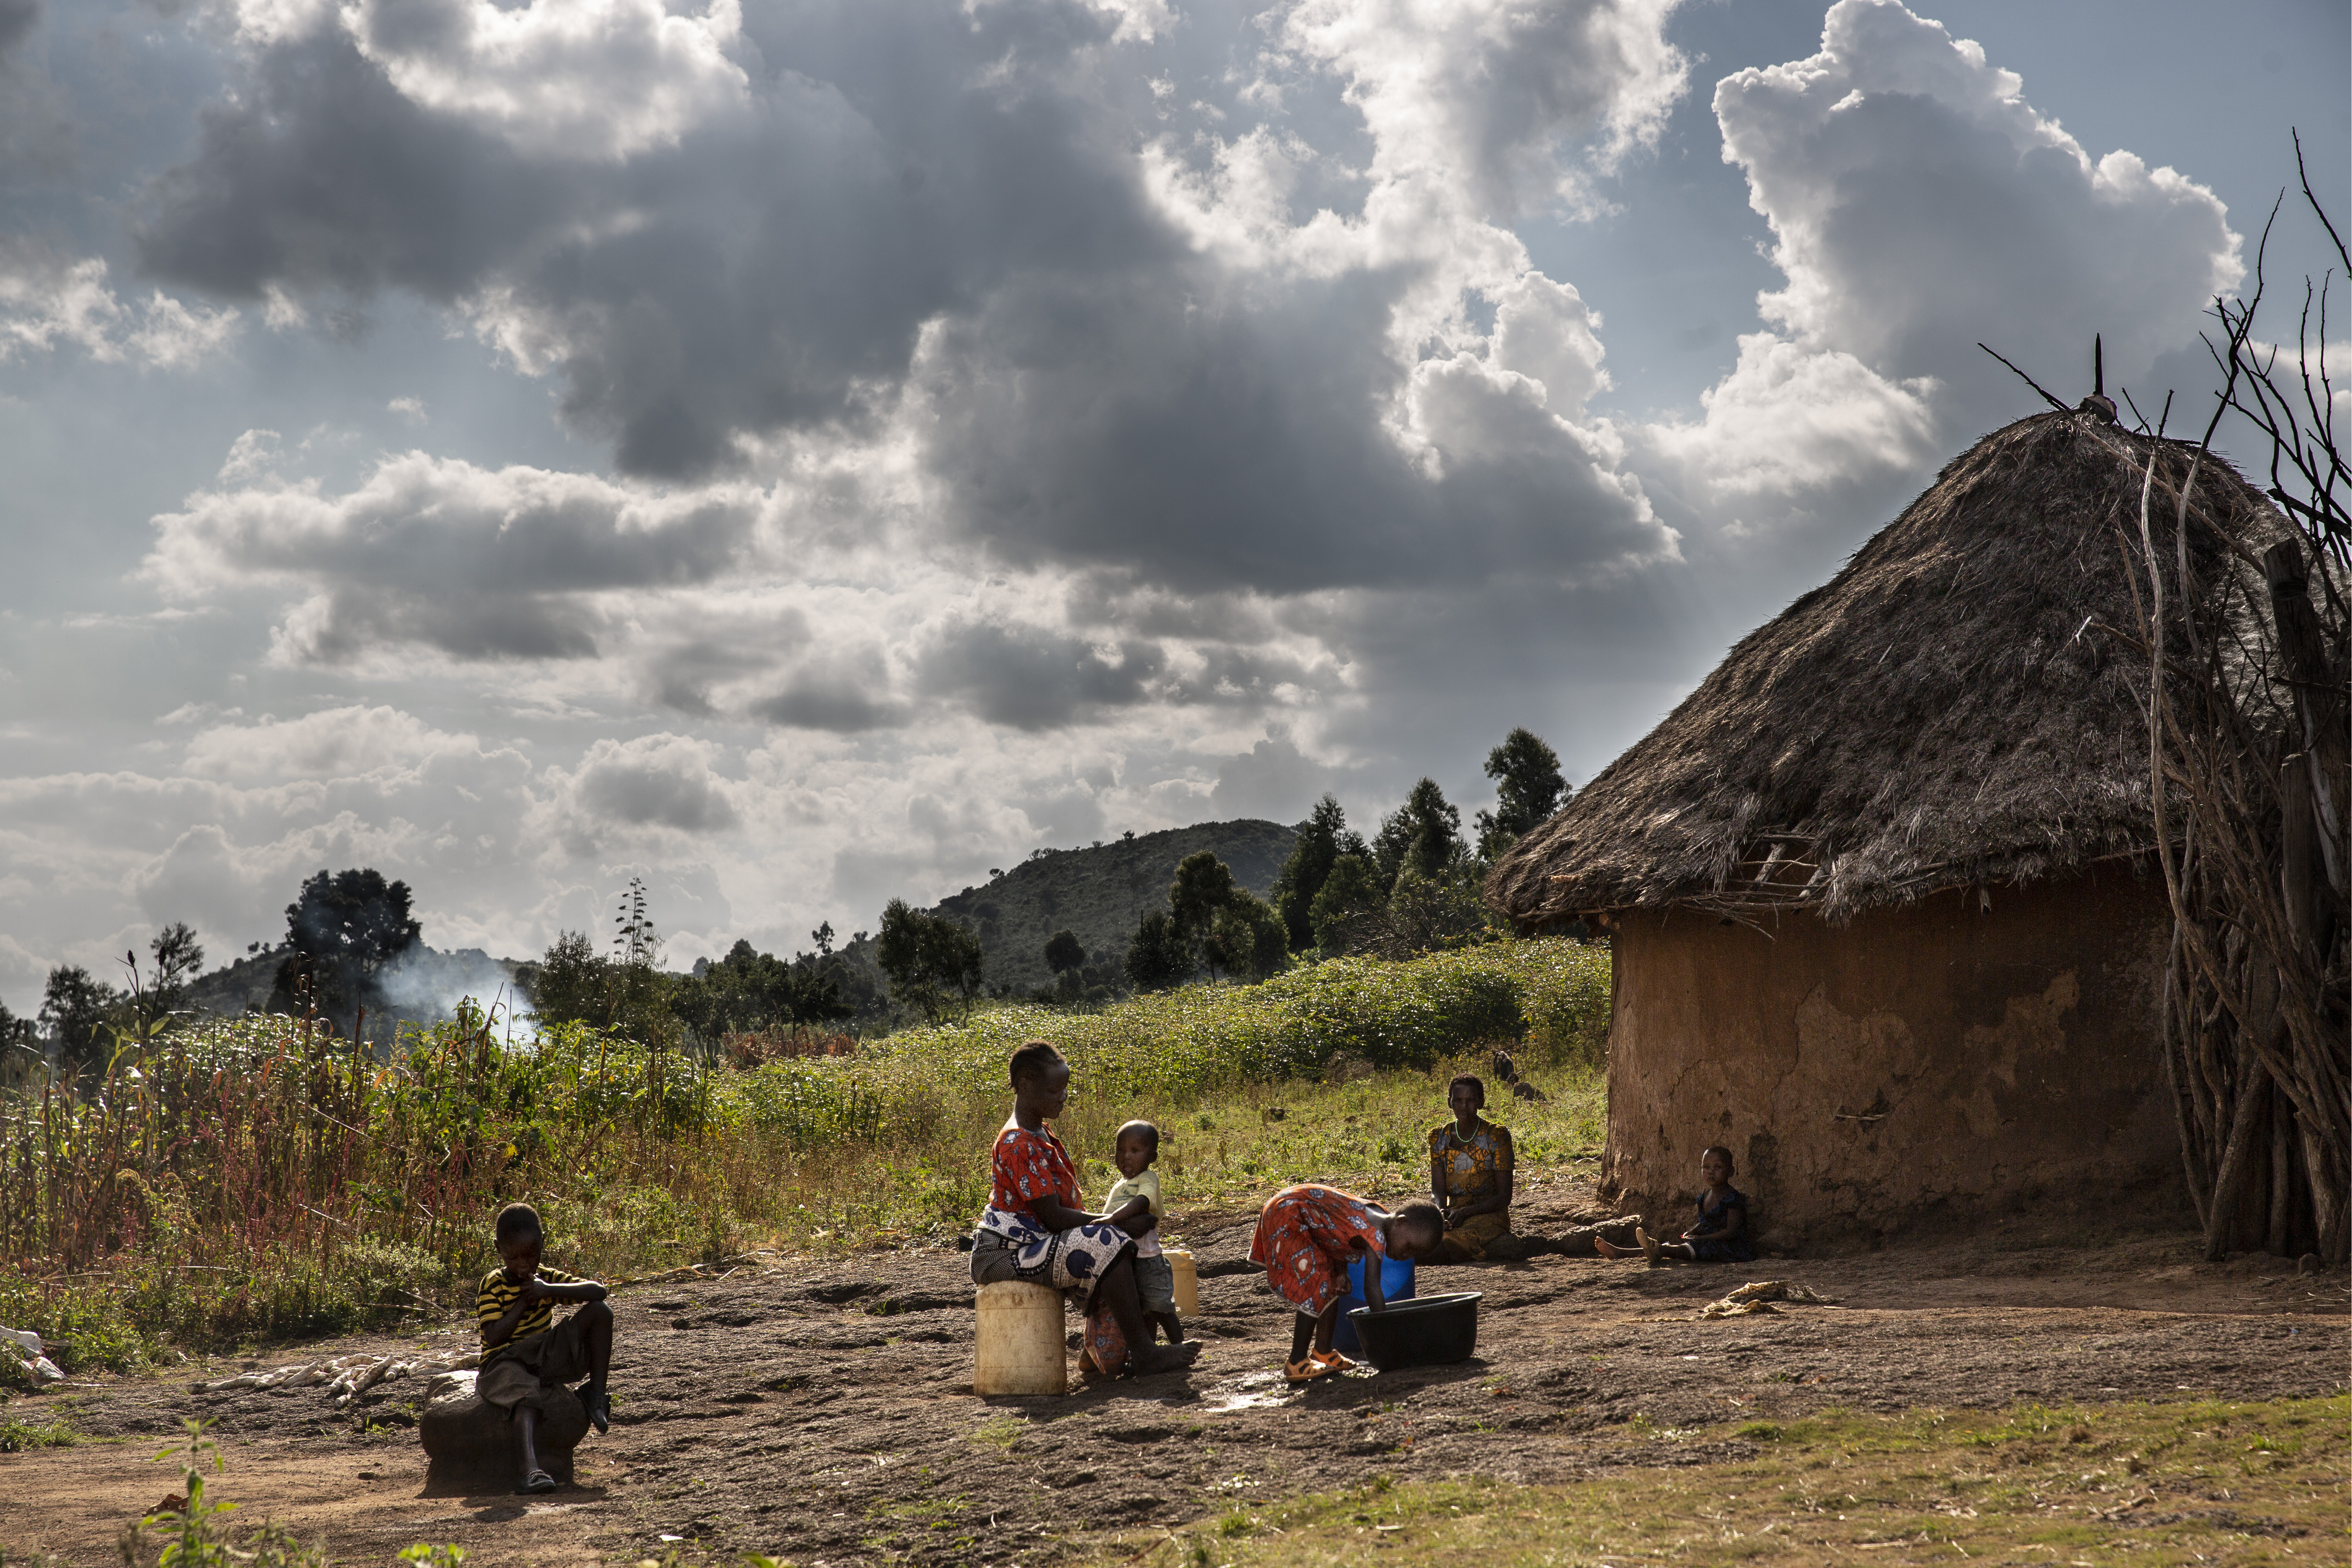 Women and children in front of home in Tanzania